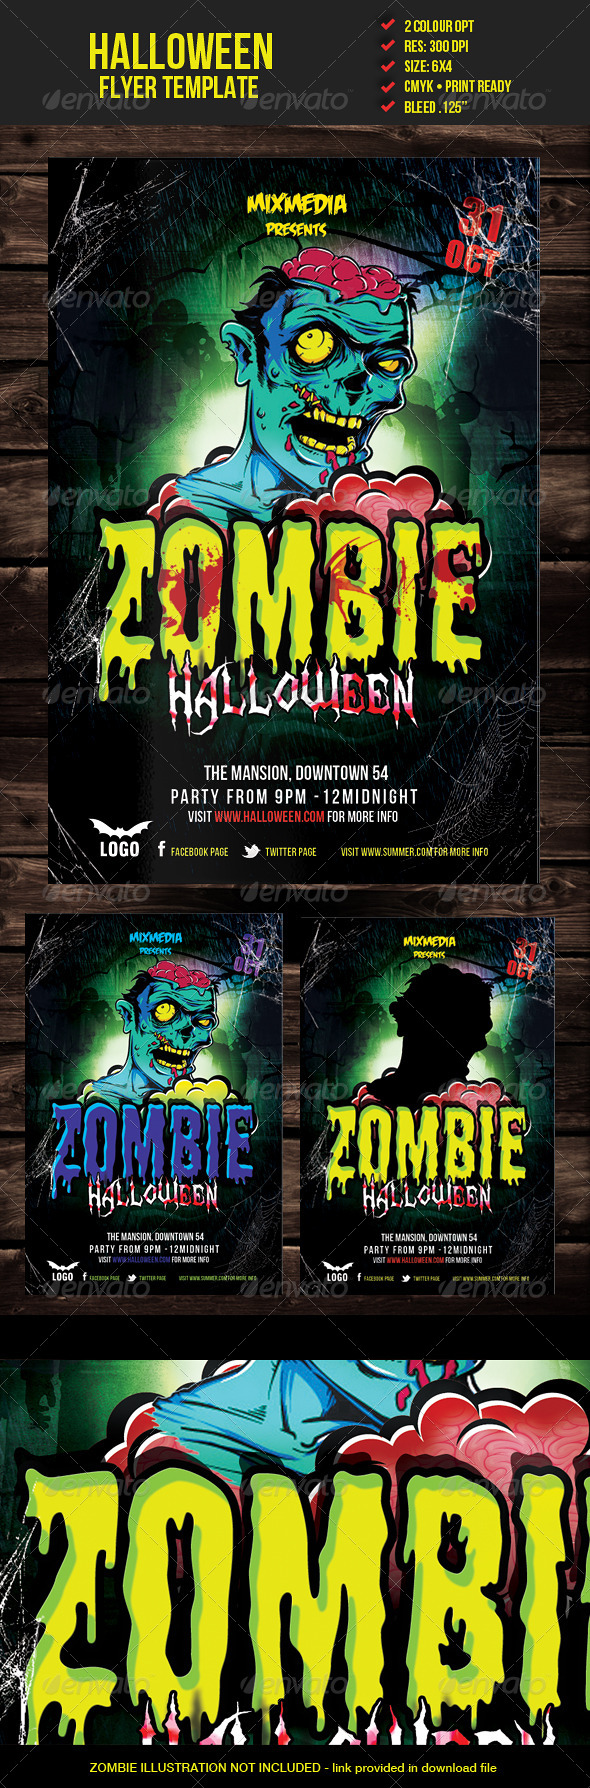 GraphicRiver Zombie Halloween Flyer Template 5633664